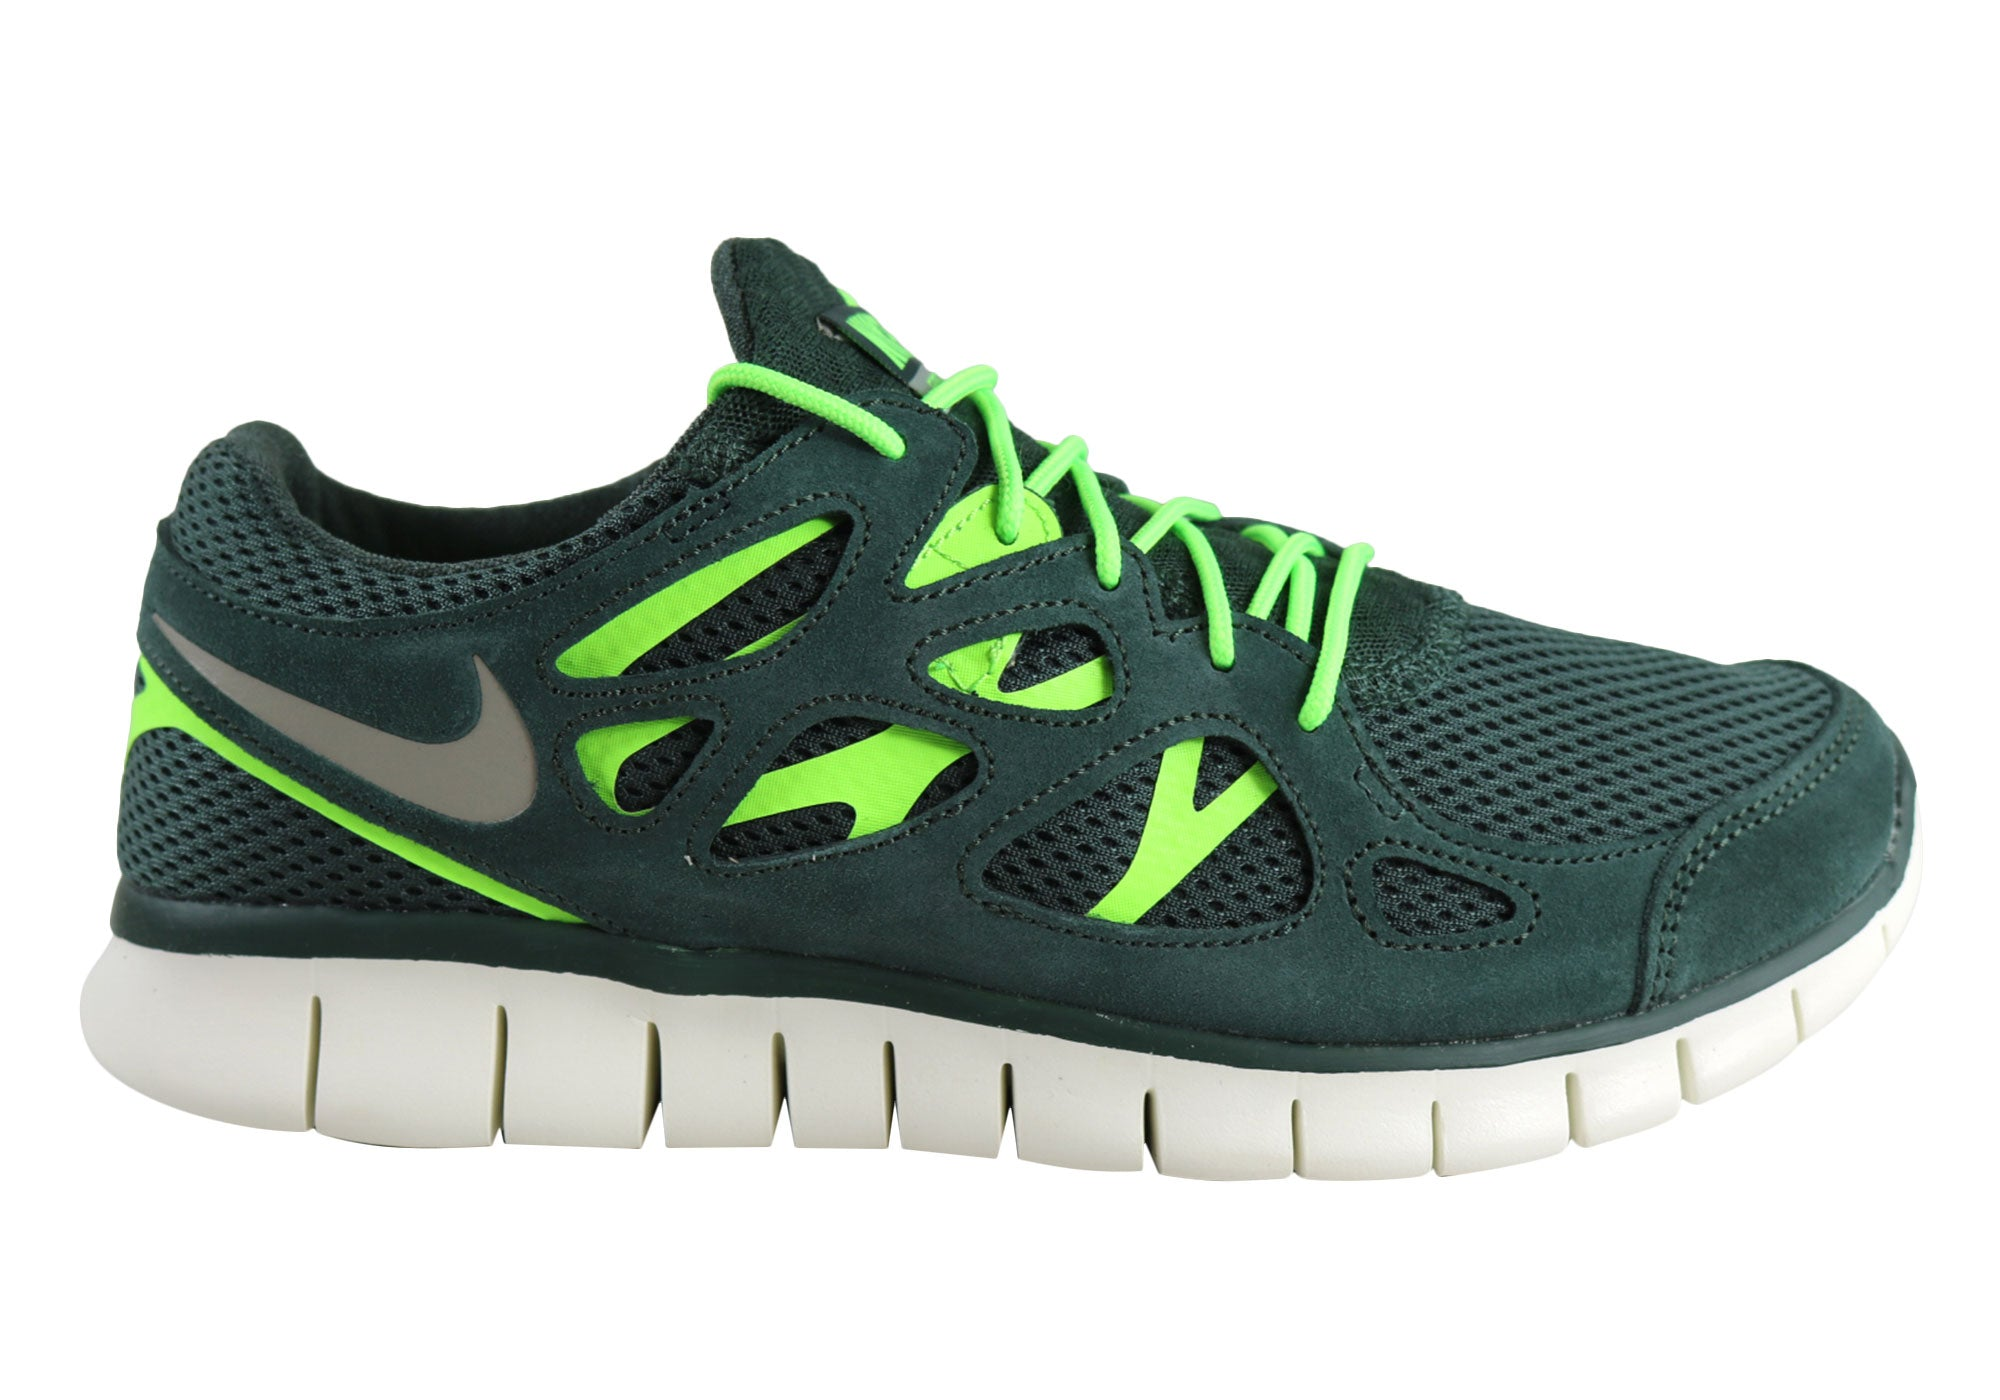 3dcc186be new zealand nike free run 2 mens running sport shoes e0891 32fc3